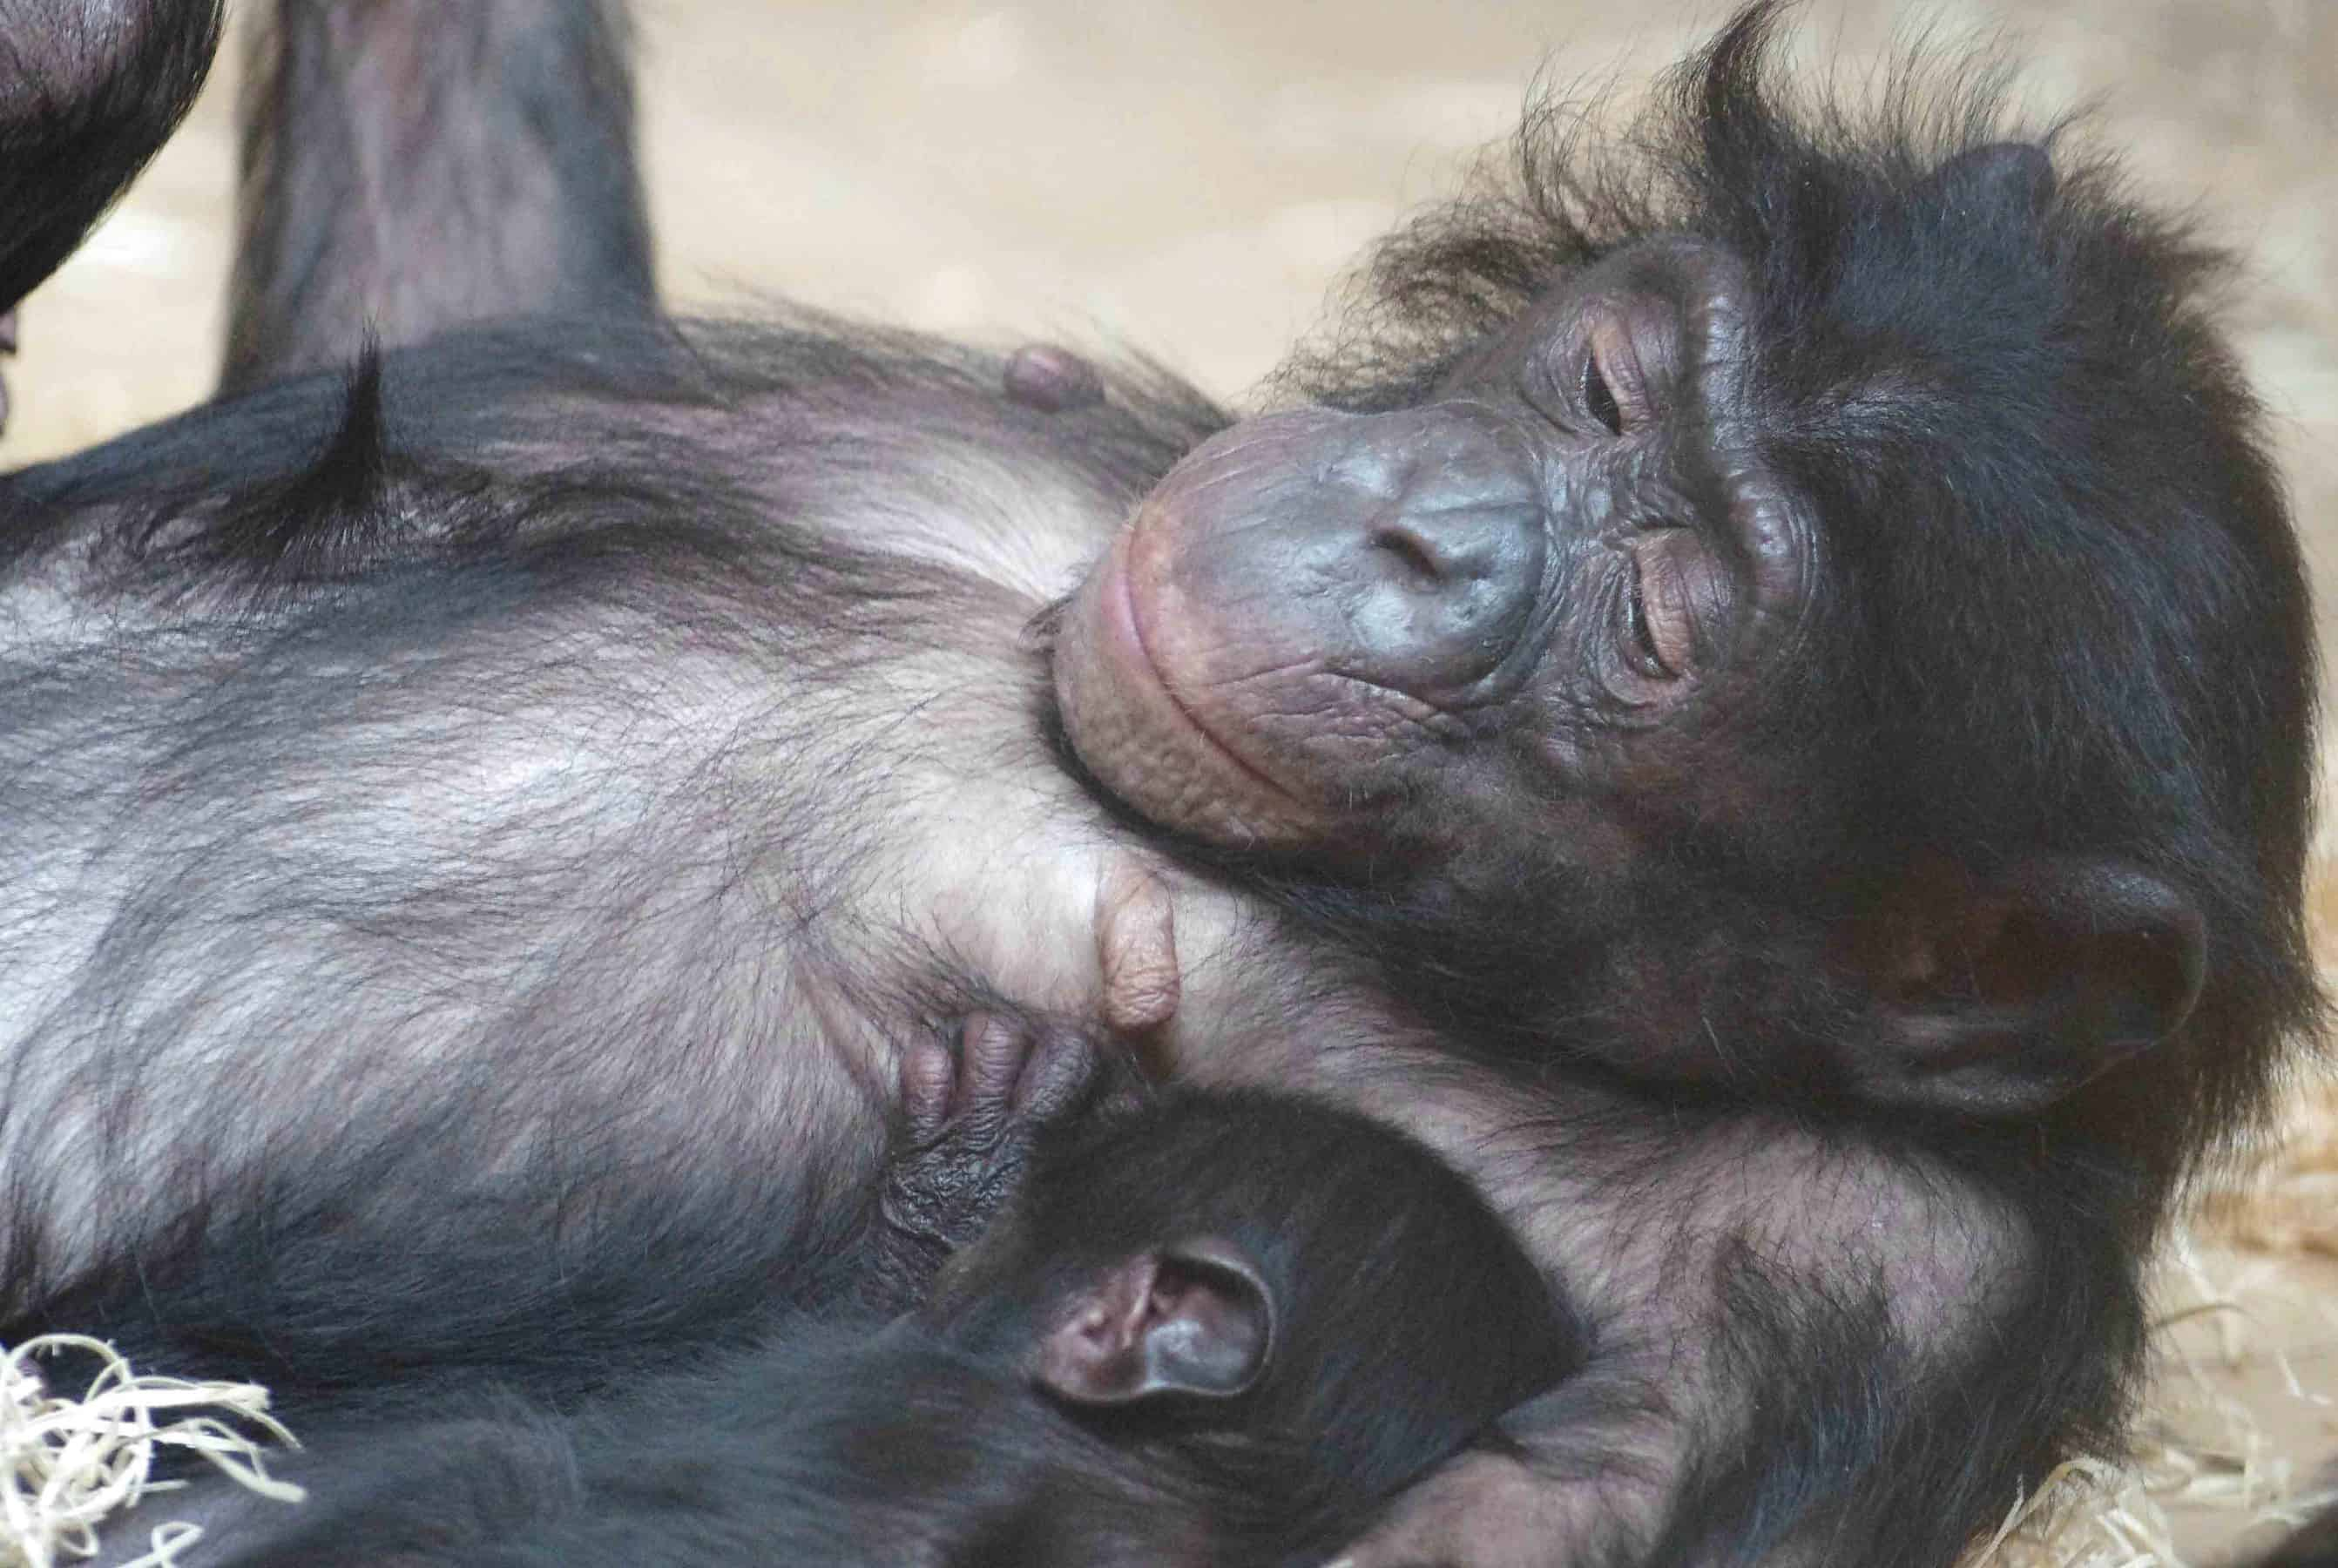 Gillian-Day-Bonobo-Mum-Baby-2-low-res